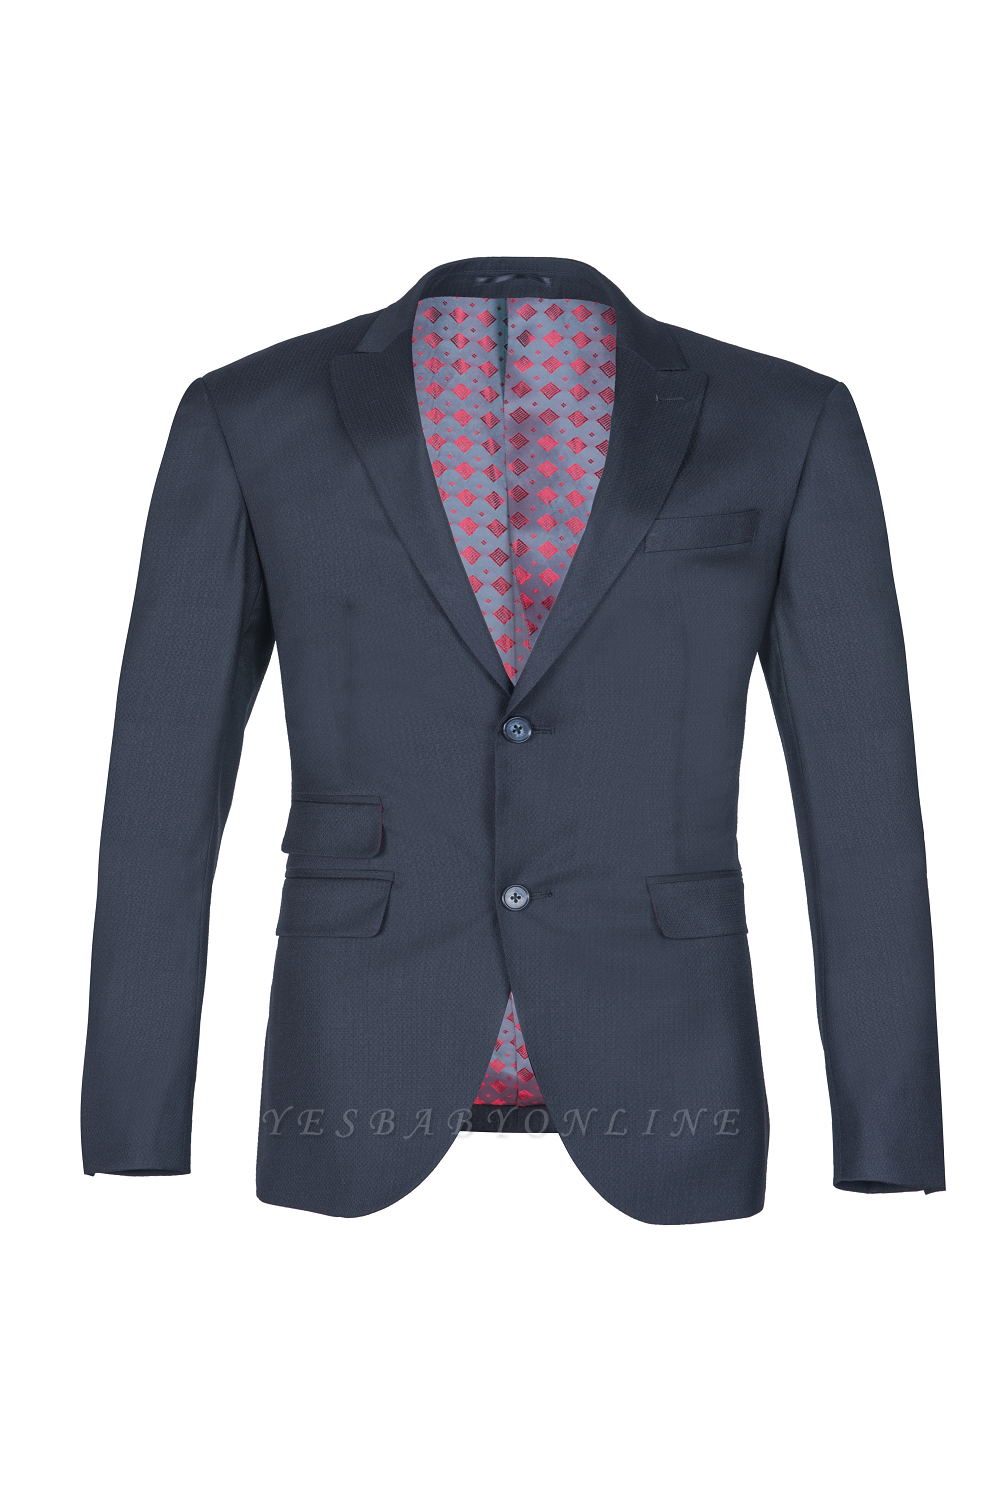 Breasted Black Peak Lapel Two Button Single Slim Fit Classic Suit